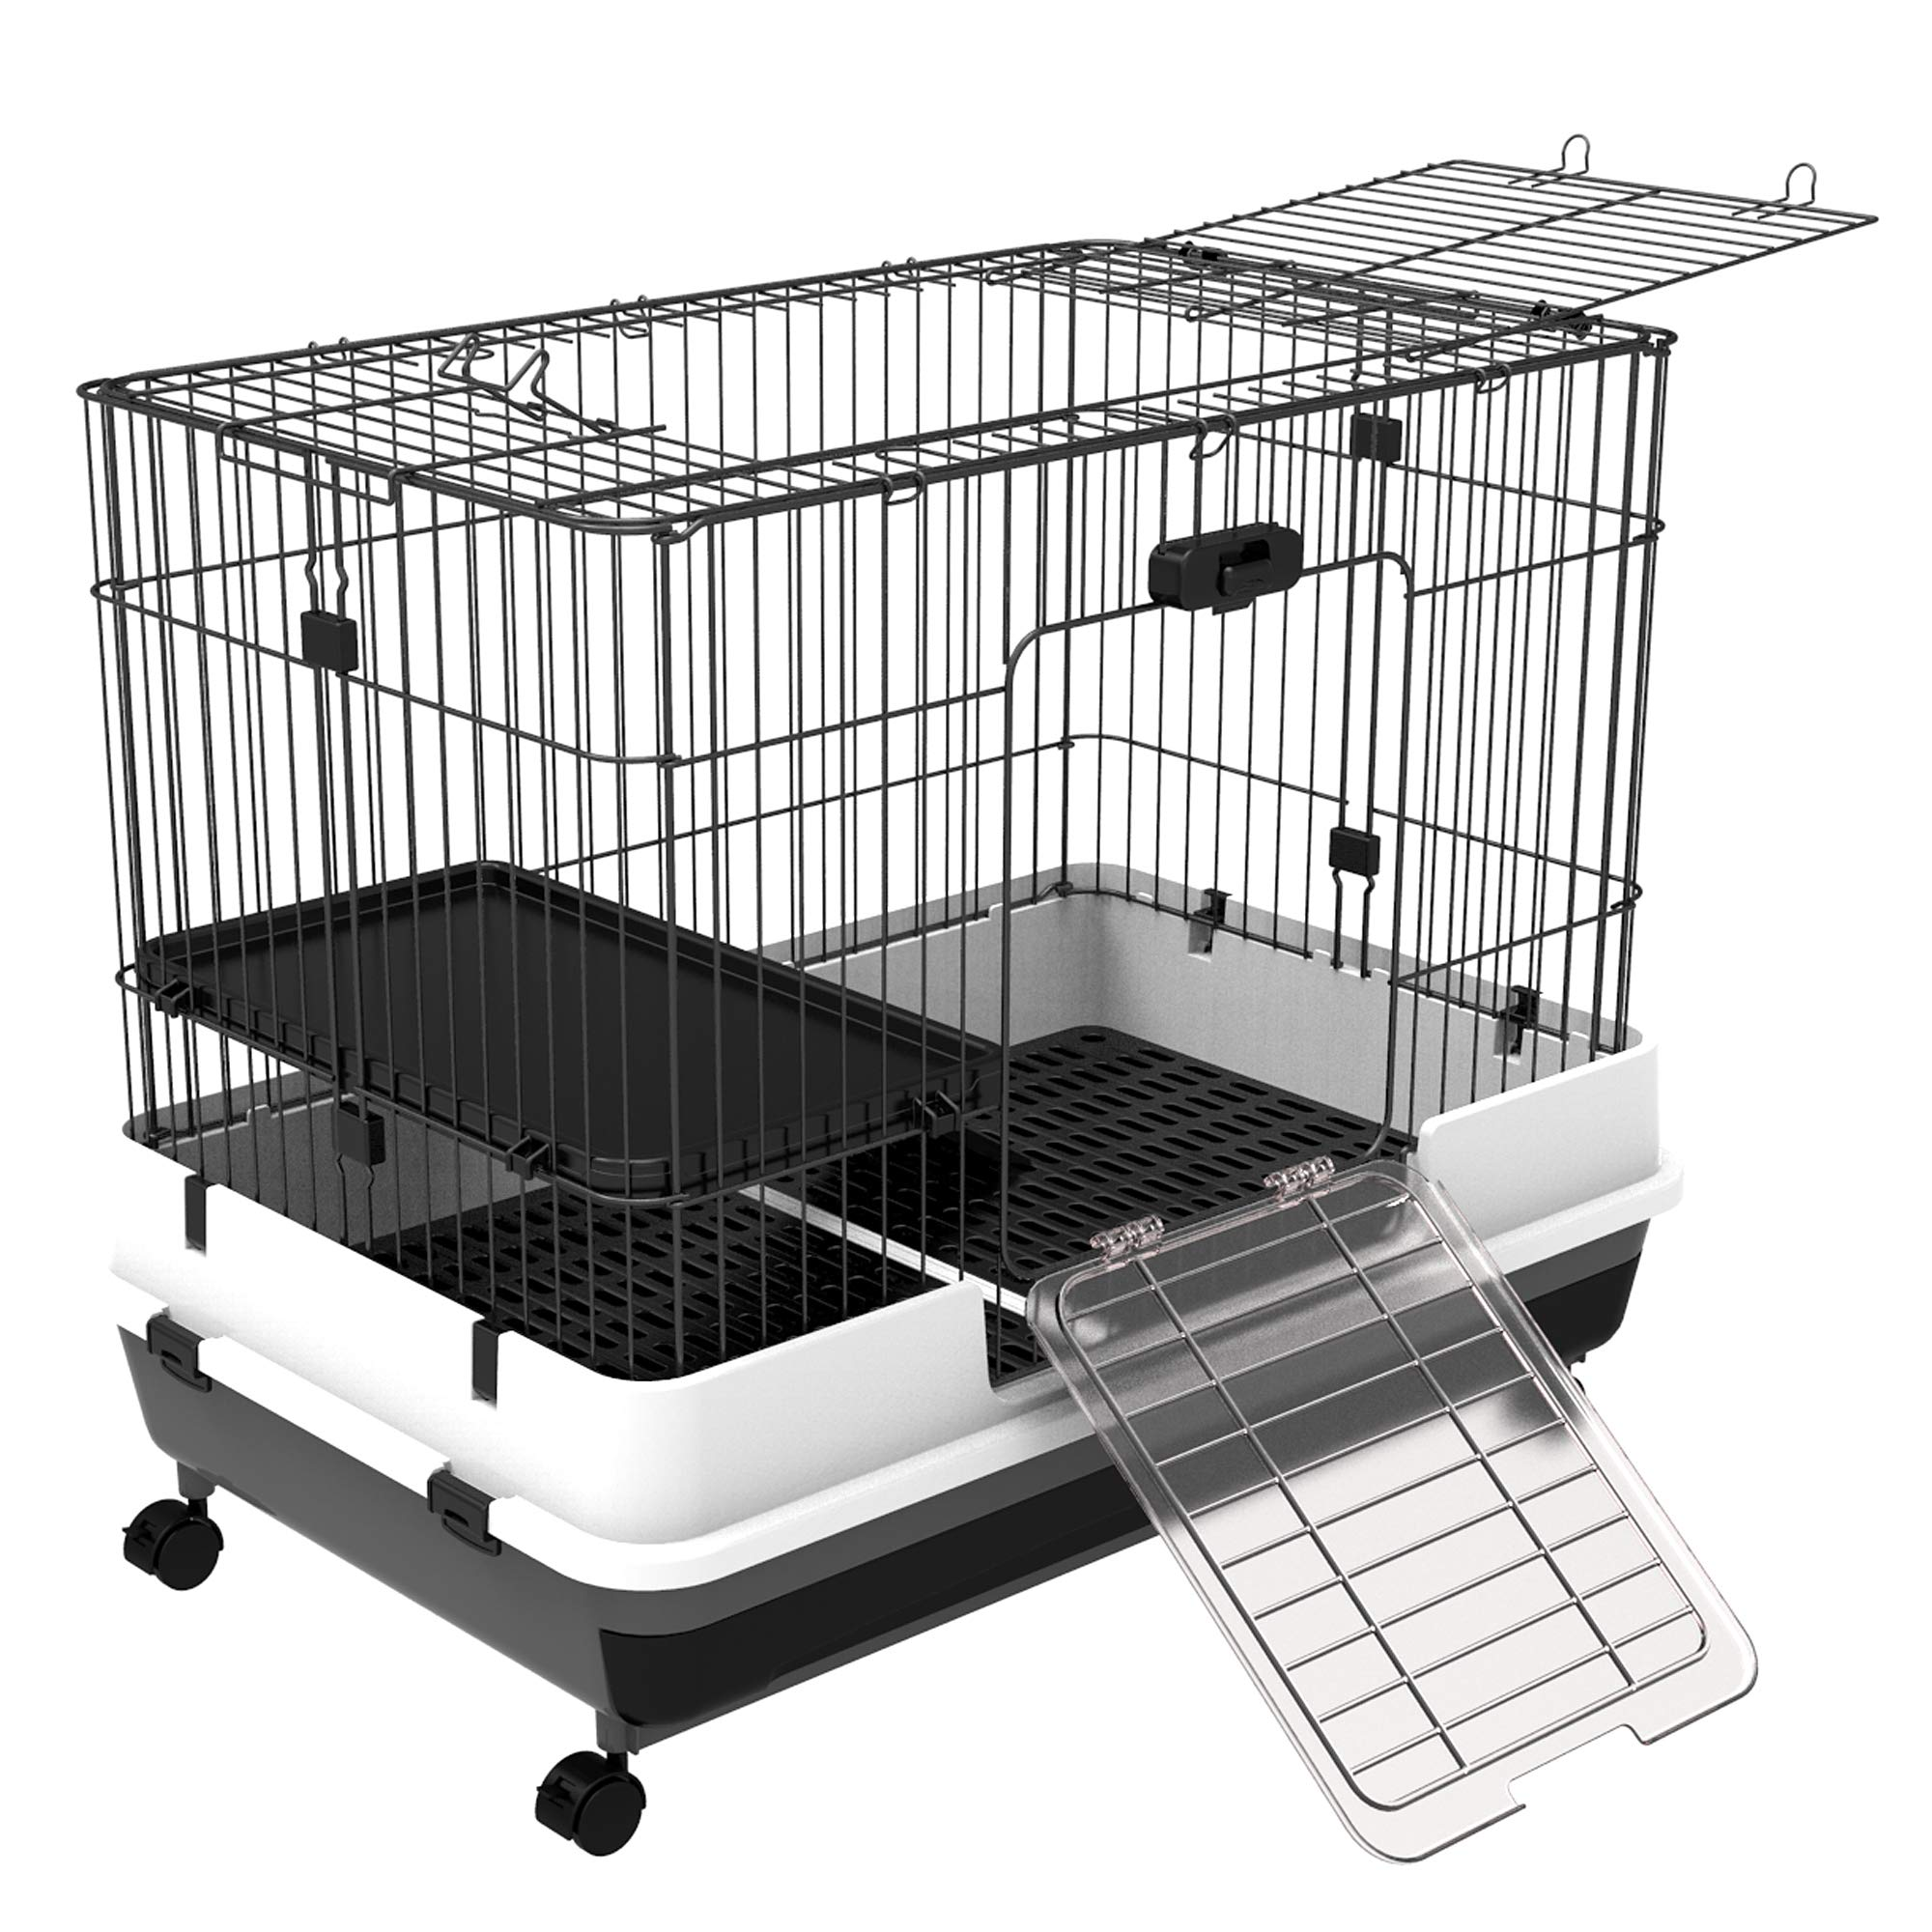 PawHut 32''L 2-Level Indoor Small Animal Rabbit Cage with Wheels - Black by PawHut